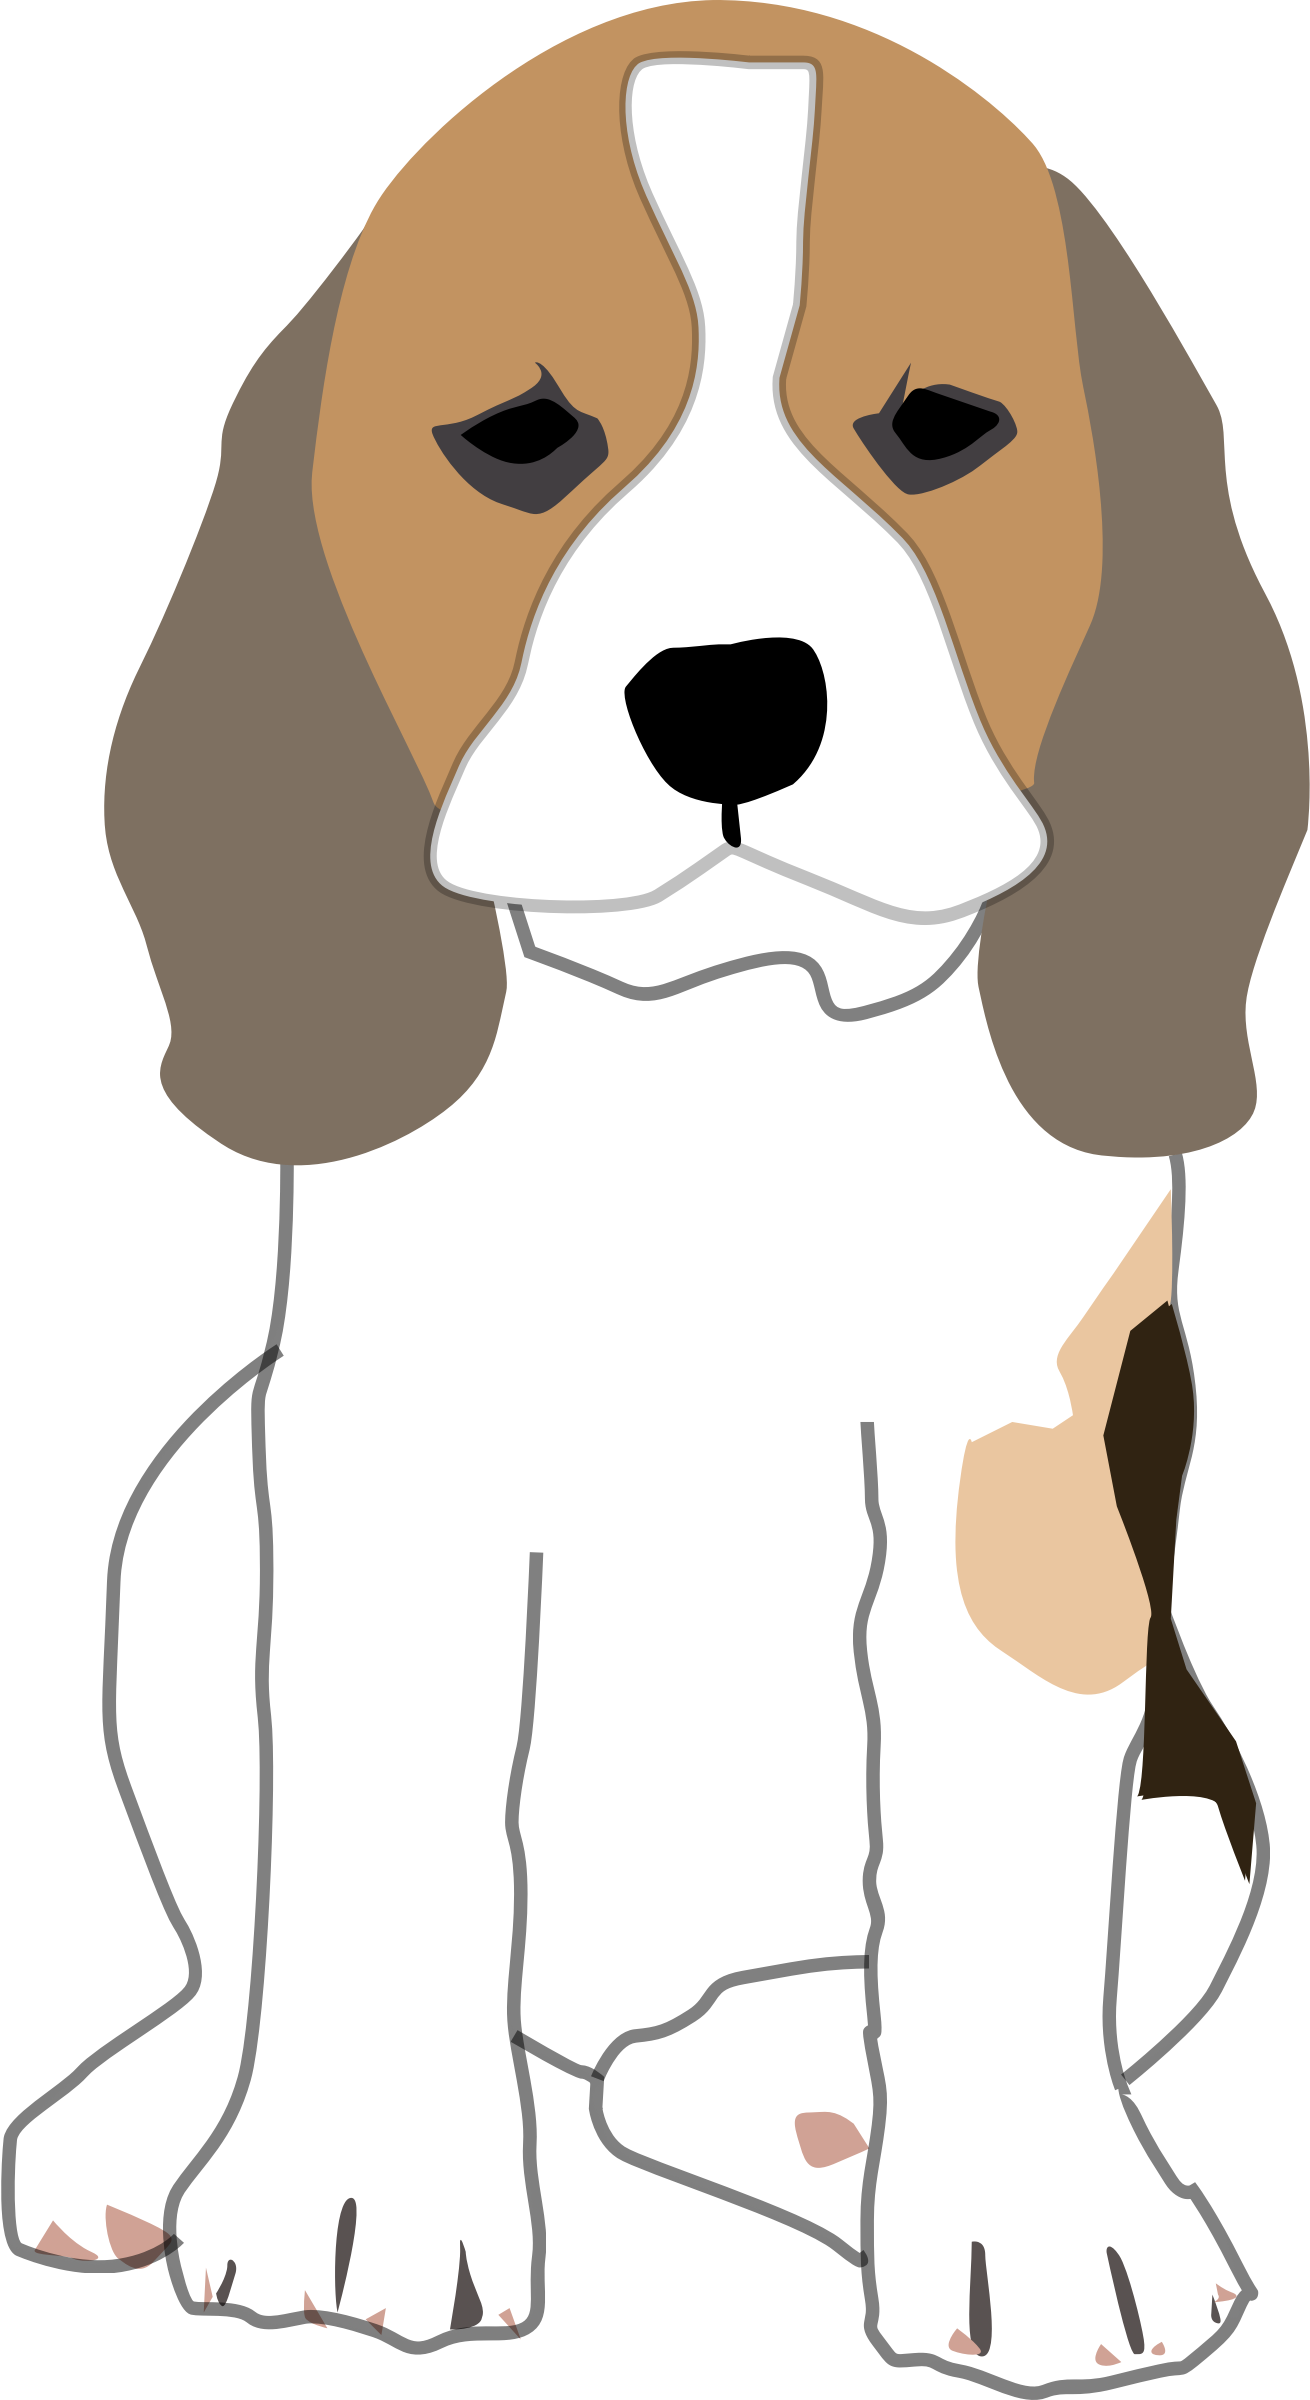 Puppies clipart beagle. Puppy big image png